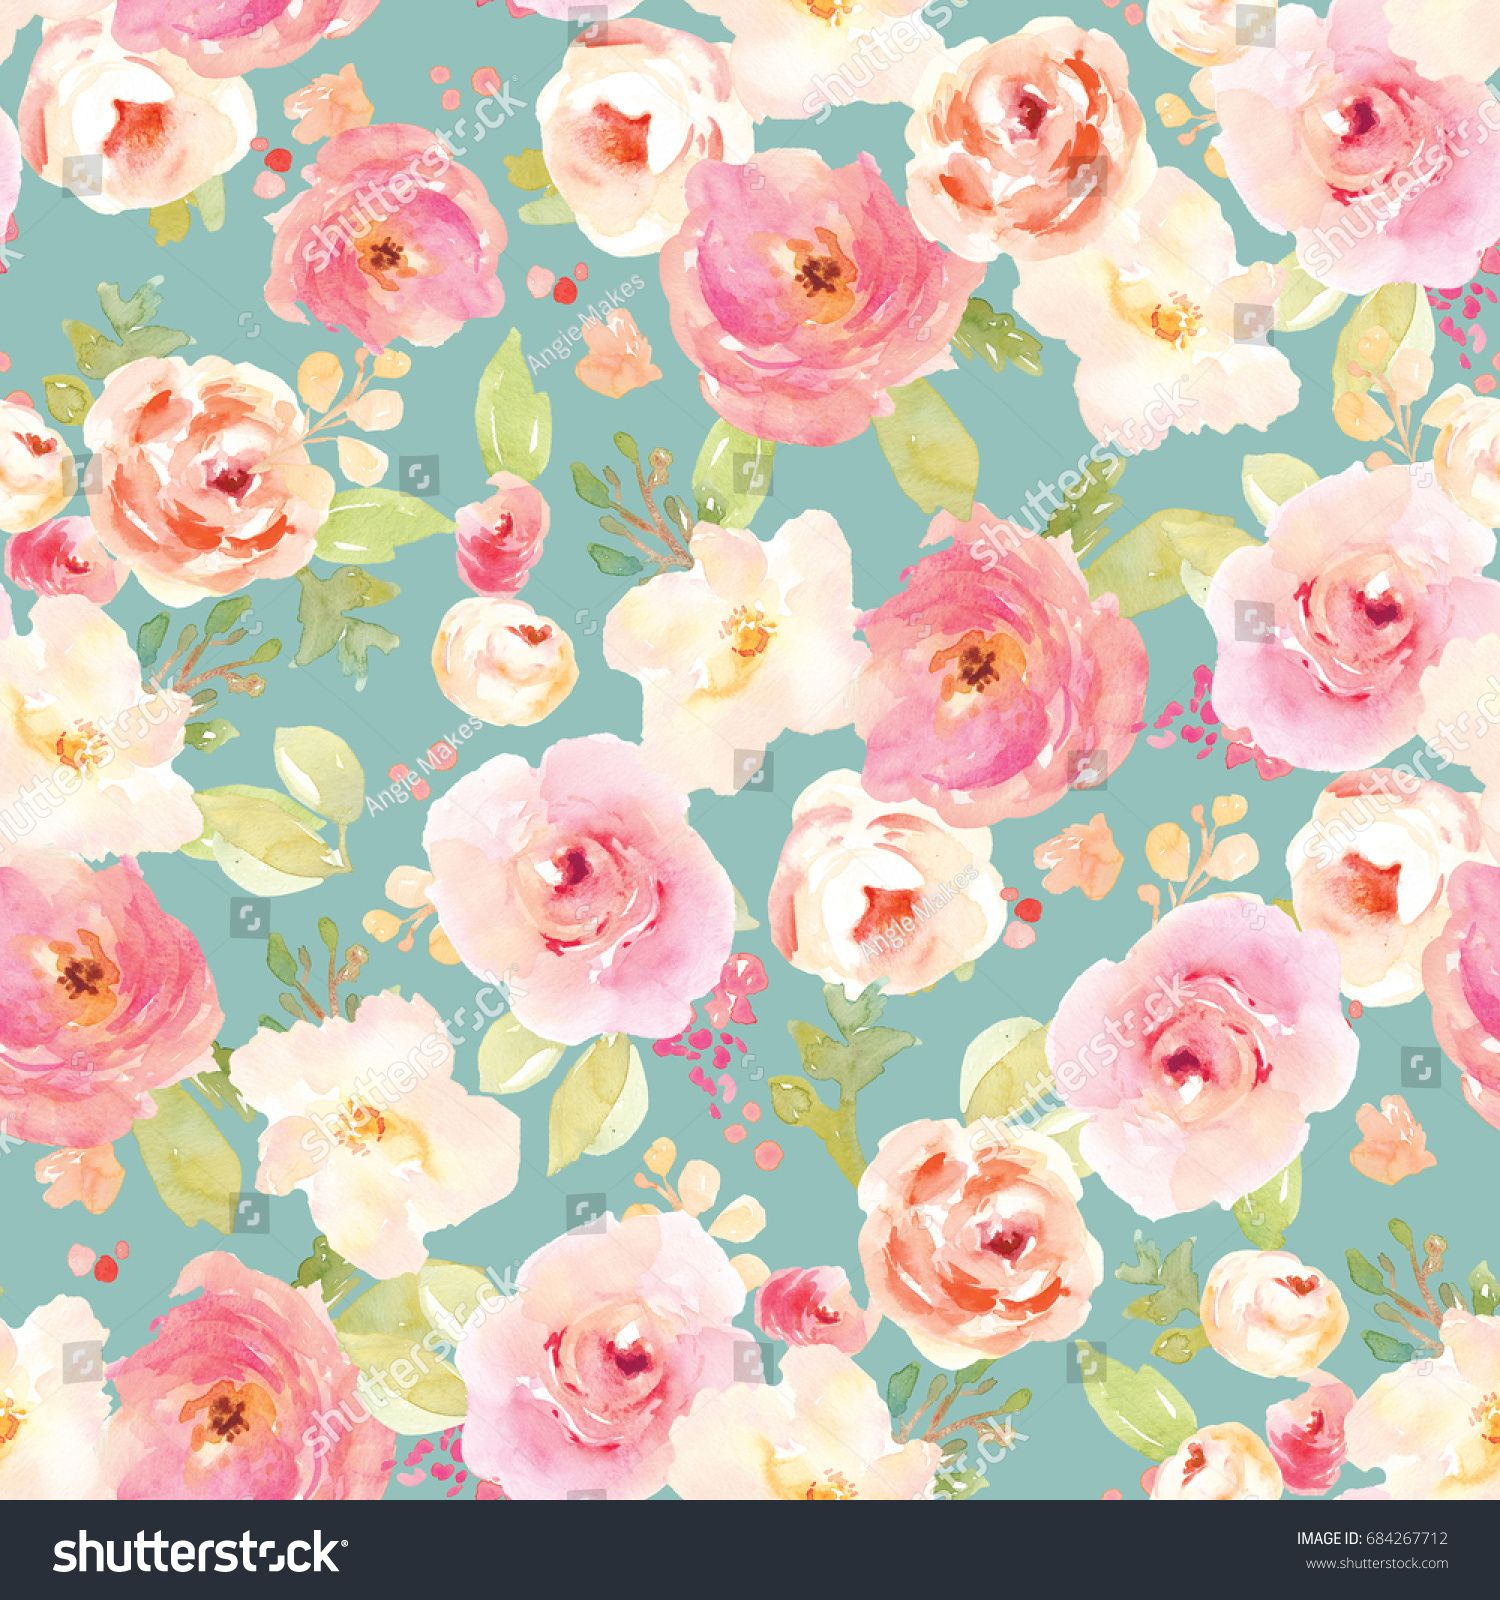 Cute Vintage Watercolor Flower Pattern With Teal Background